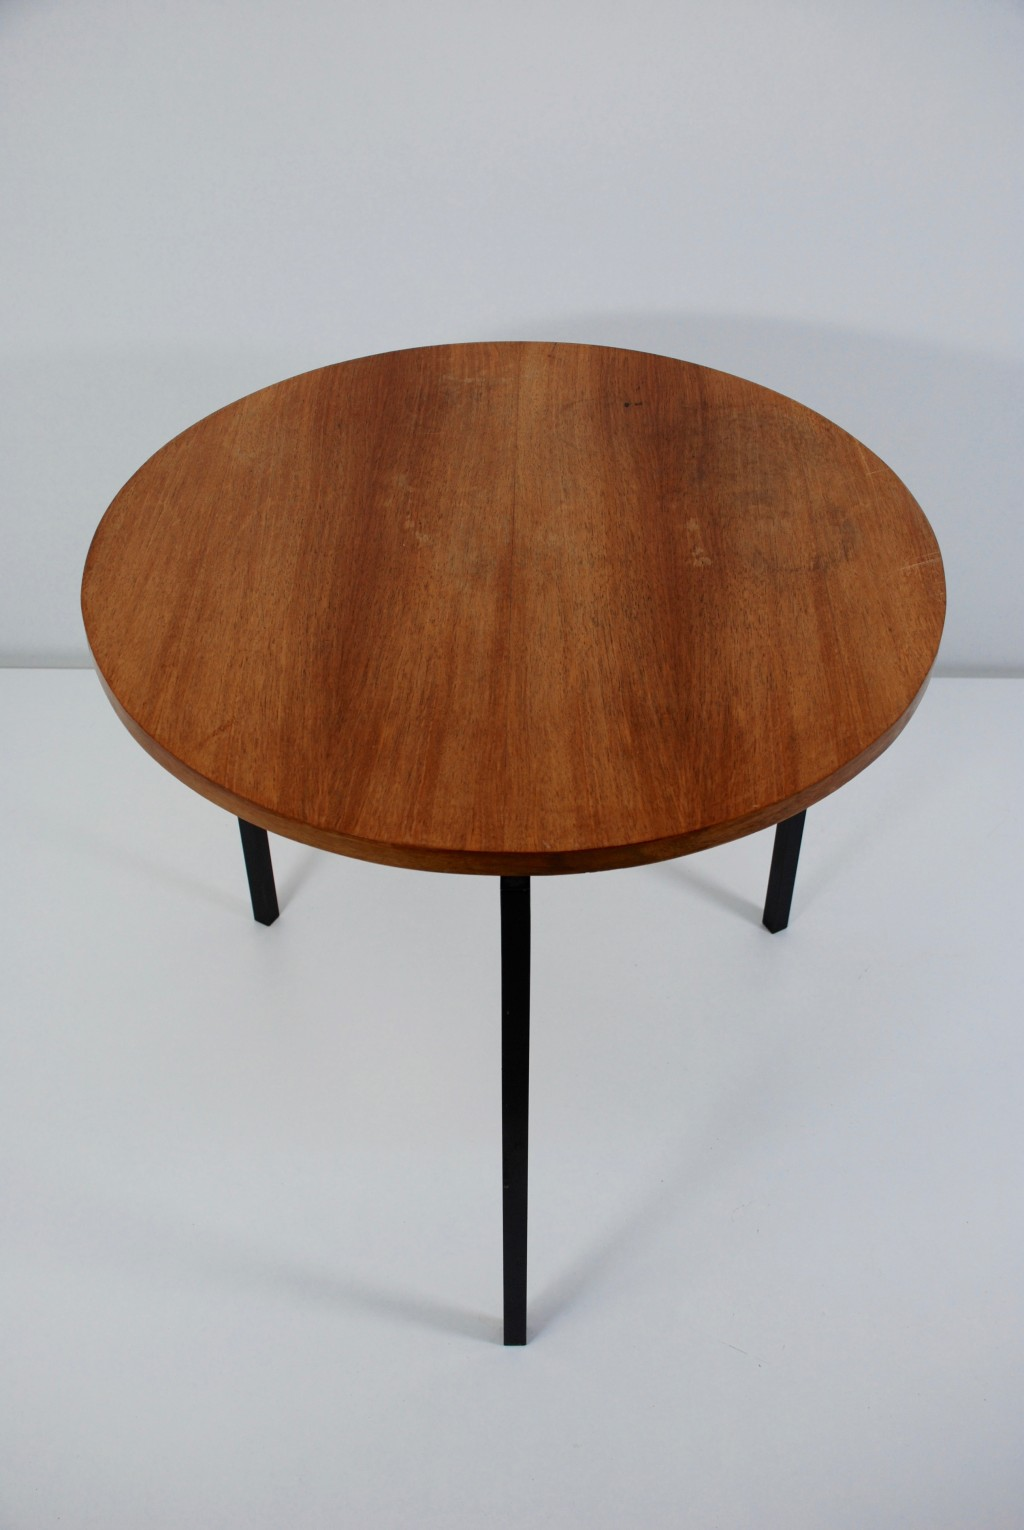 Coffee table 'Mod. 2562C', Florence Knoll 1950er Jahre